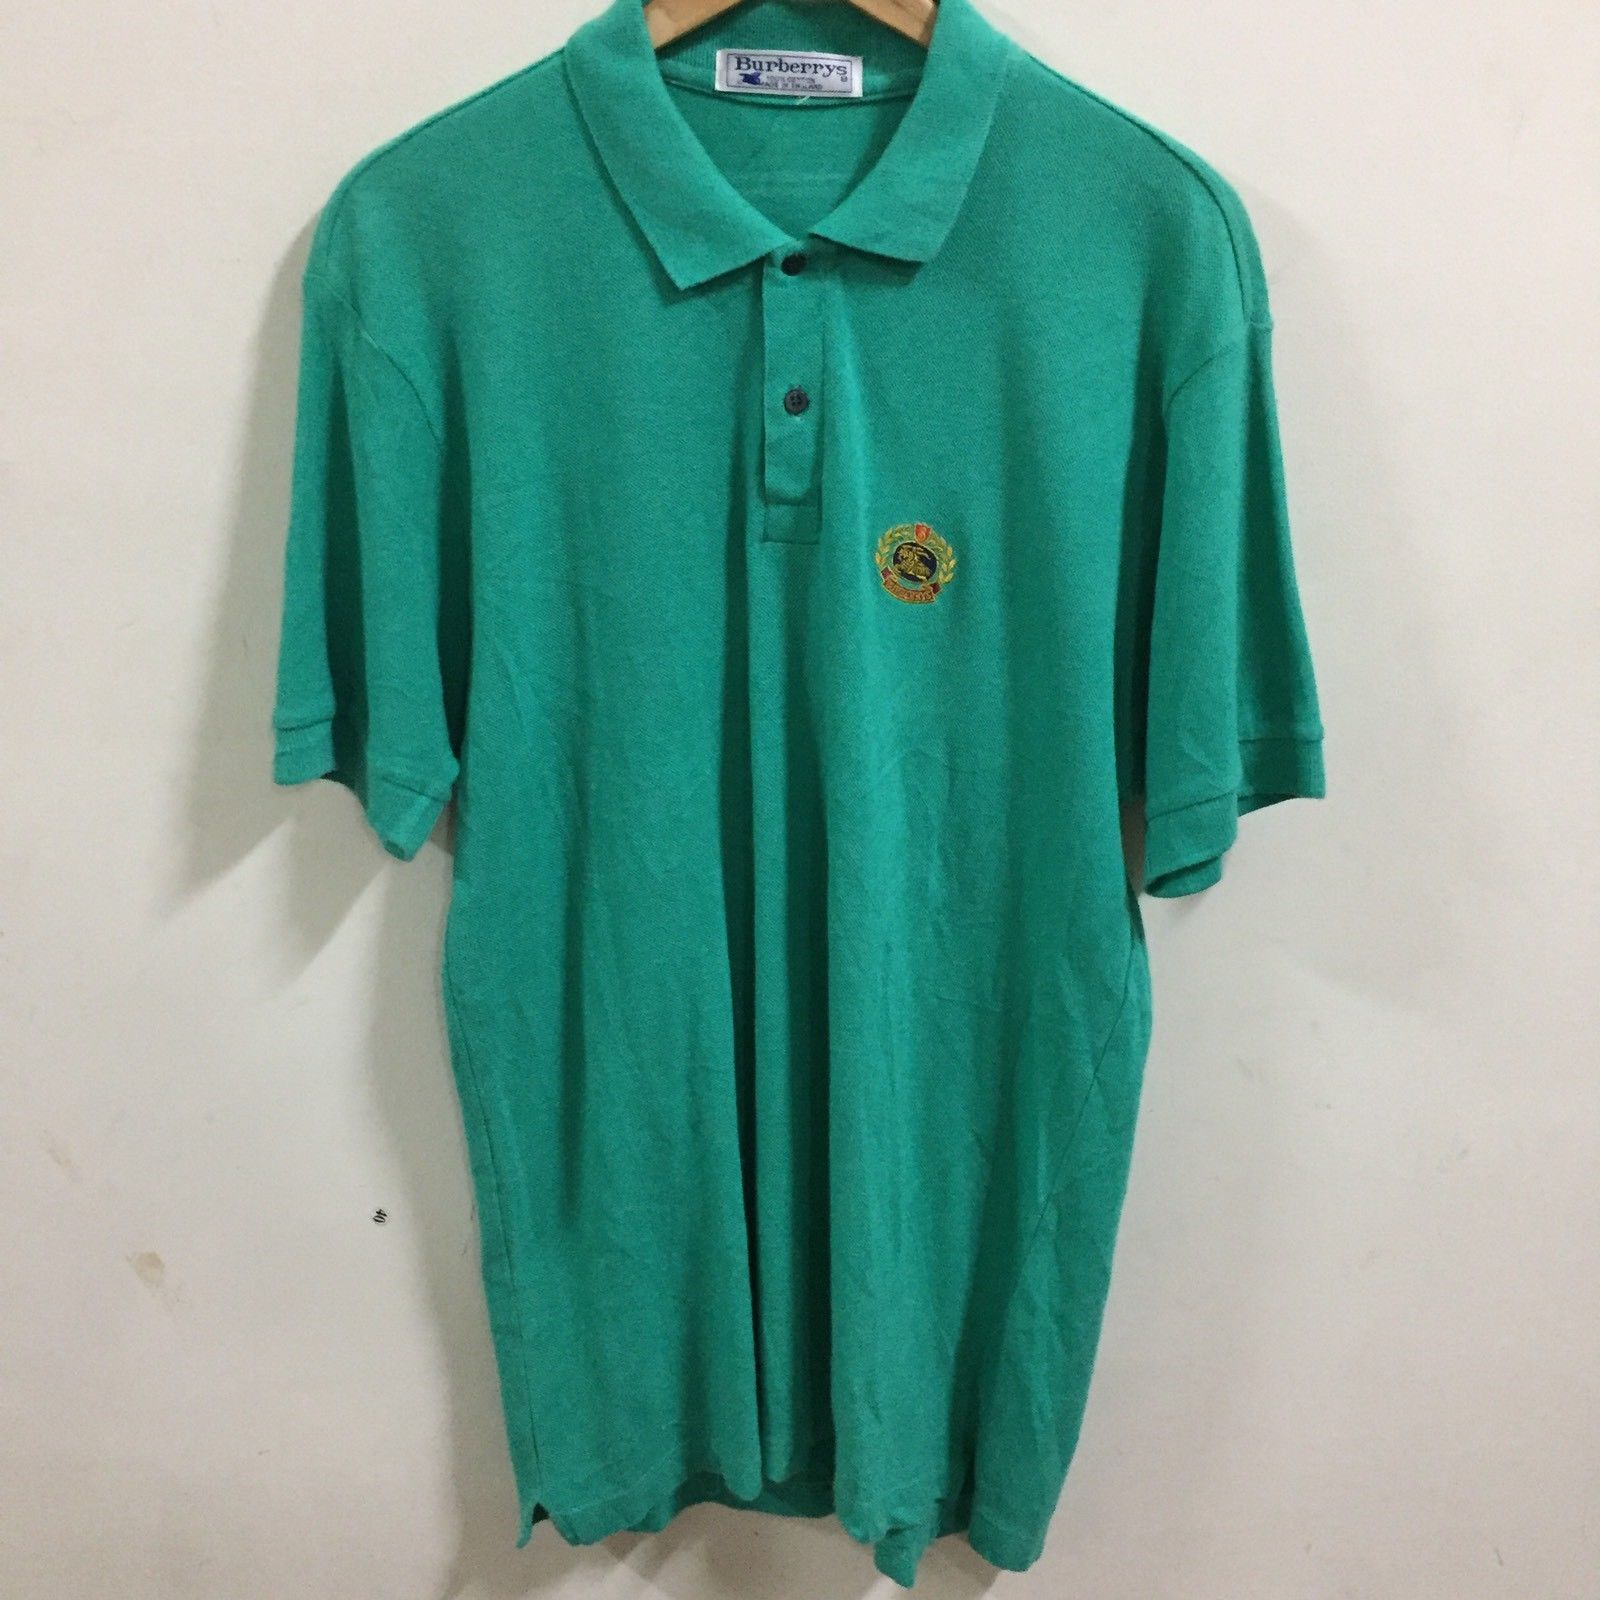 ceed65e0c Men's BURBERRYS LONDON GOLF tennis Polo Shirt Size L MADE IN ENGLAND Green  - $25.74